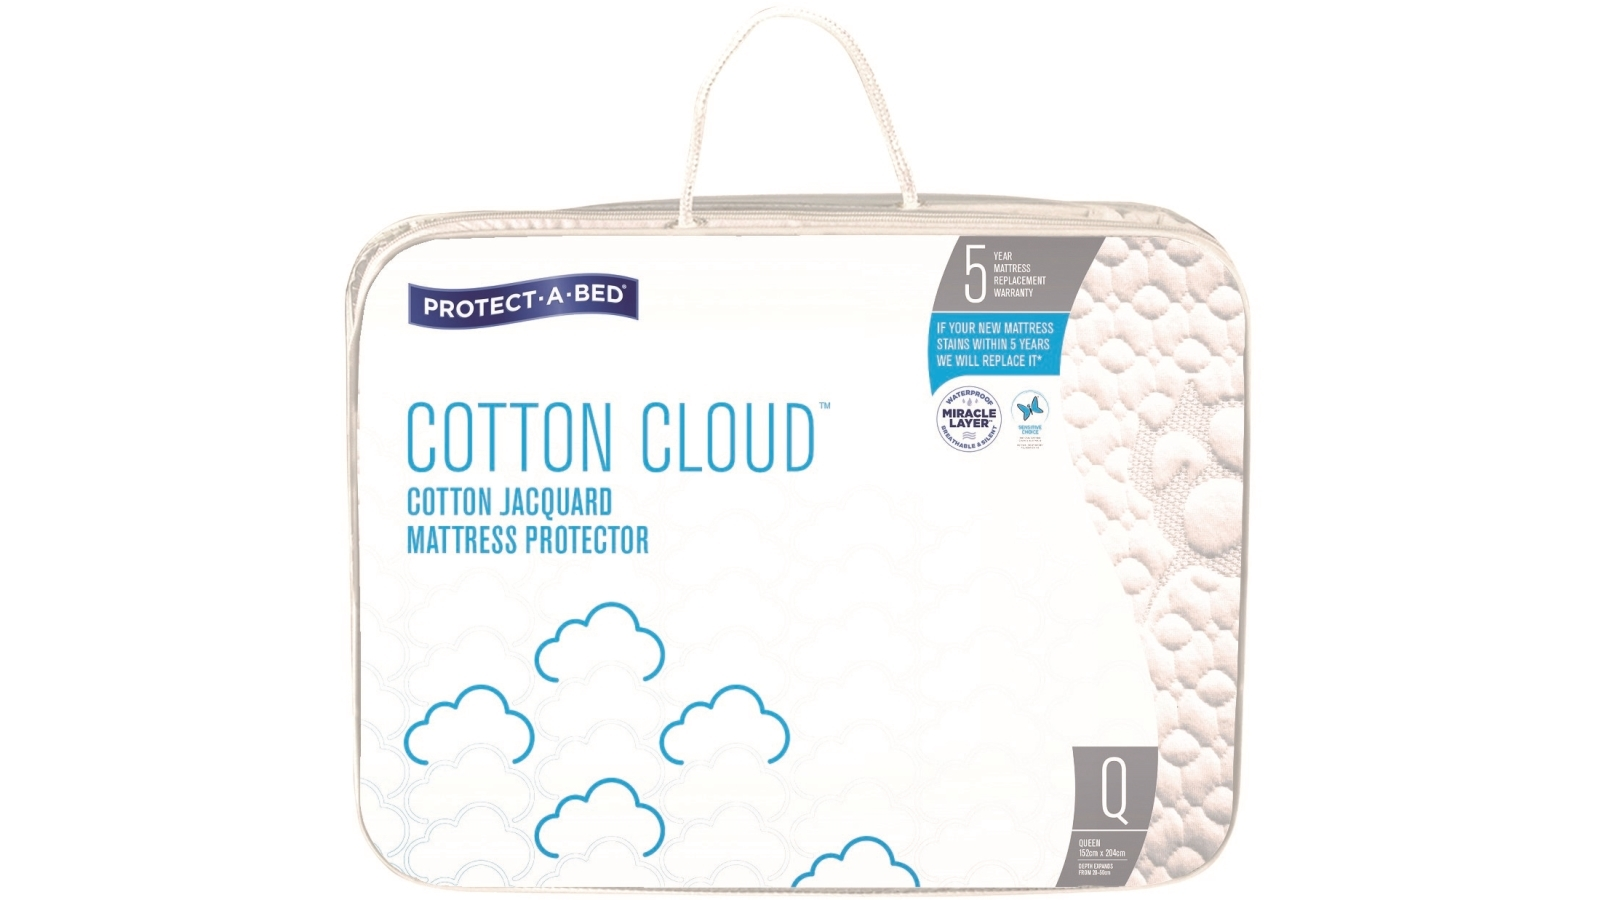 Super King Size Waterproof Mattress Protector Protect A Bed Cotton Cloud Super King Waterproof Mattress Protector